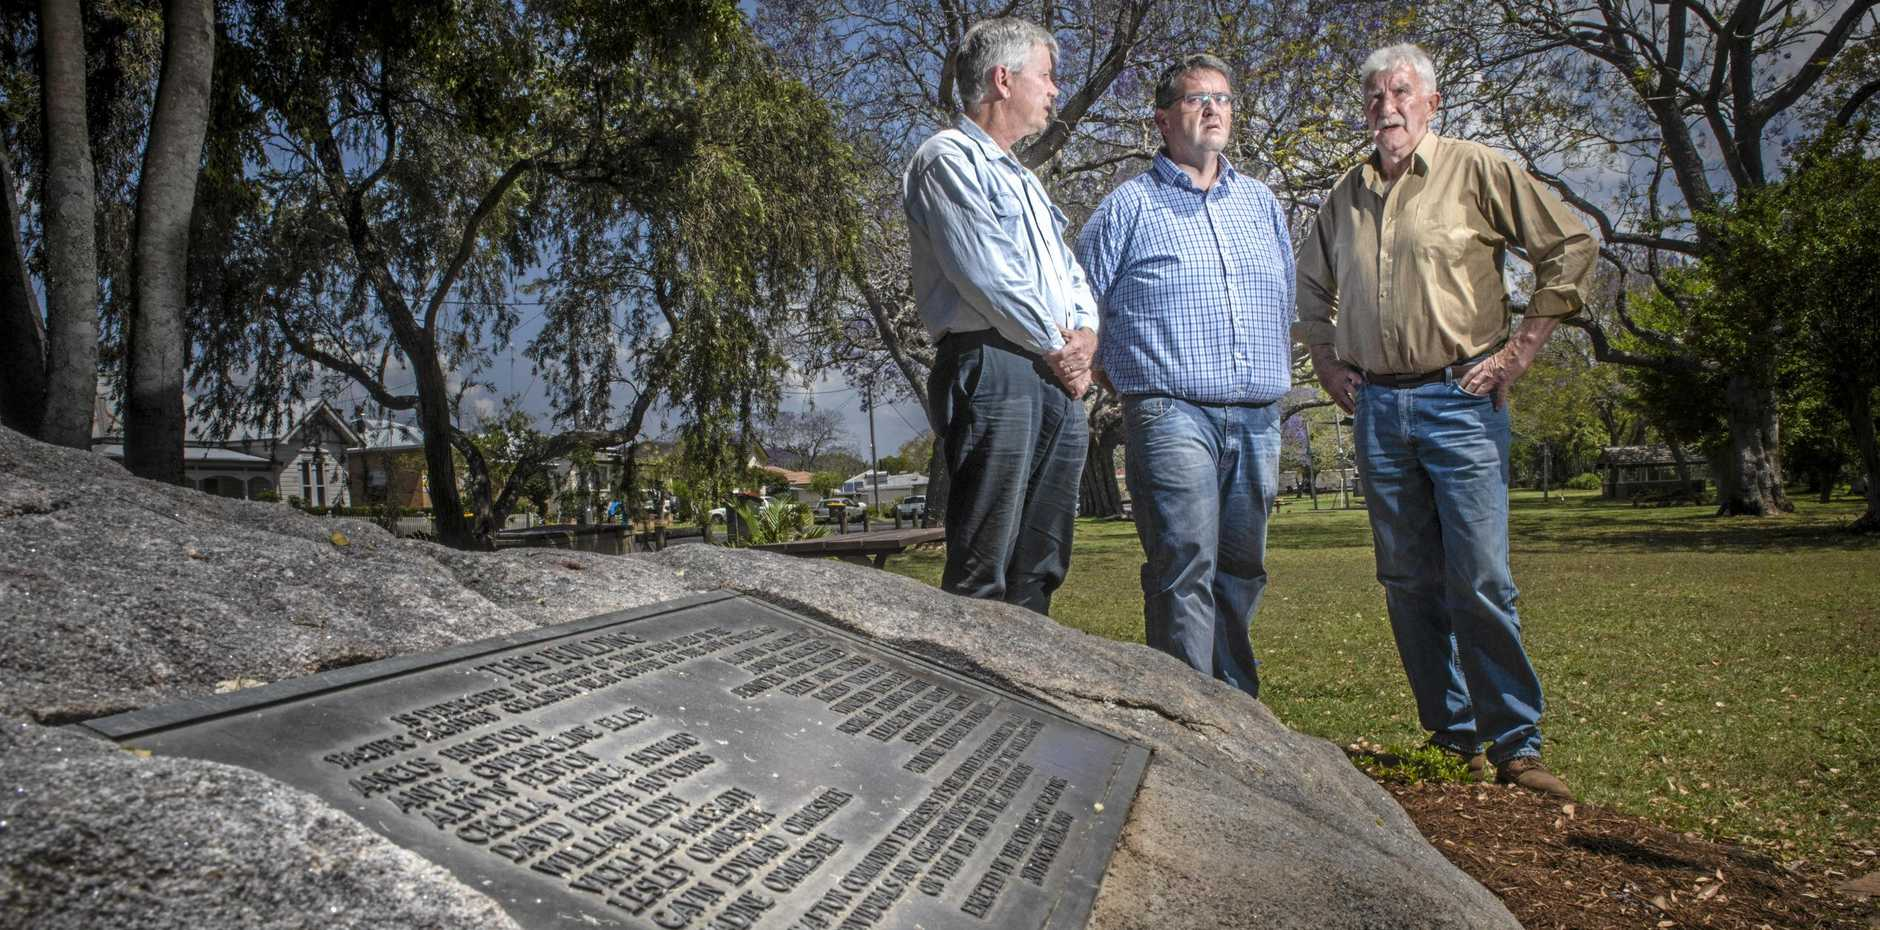 David Bancroft, Richie Williamson and Bryan Robins look over the Cowper Memorial at See Park in preparation for the 30th anniversary of the Cowper Bus Crash.